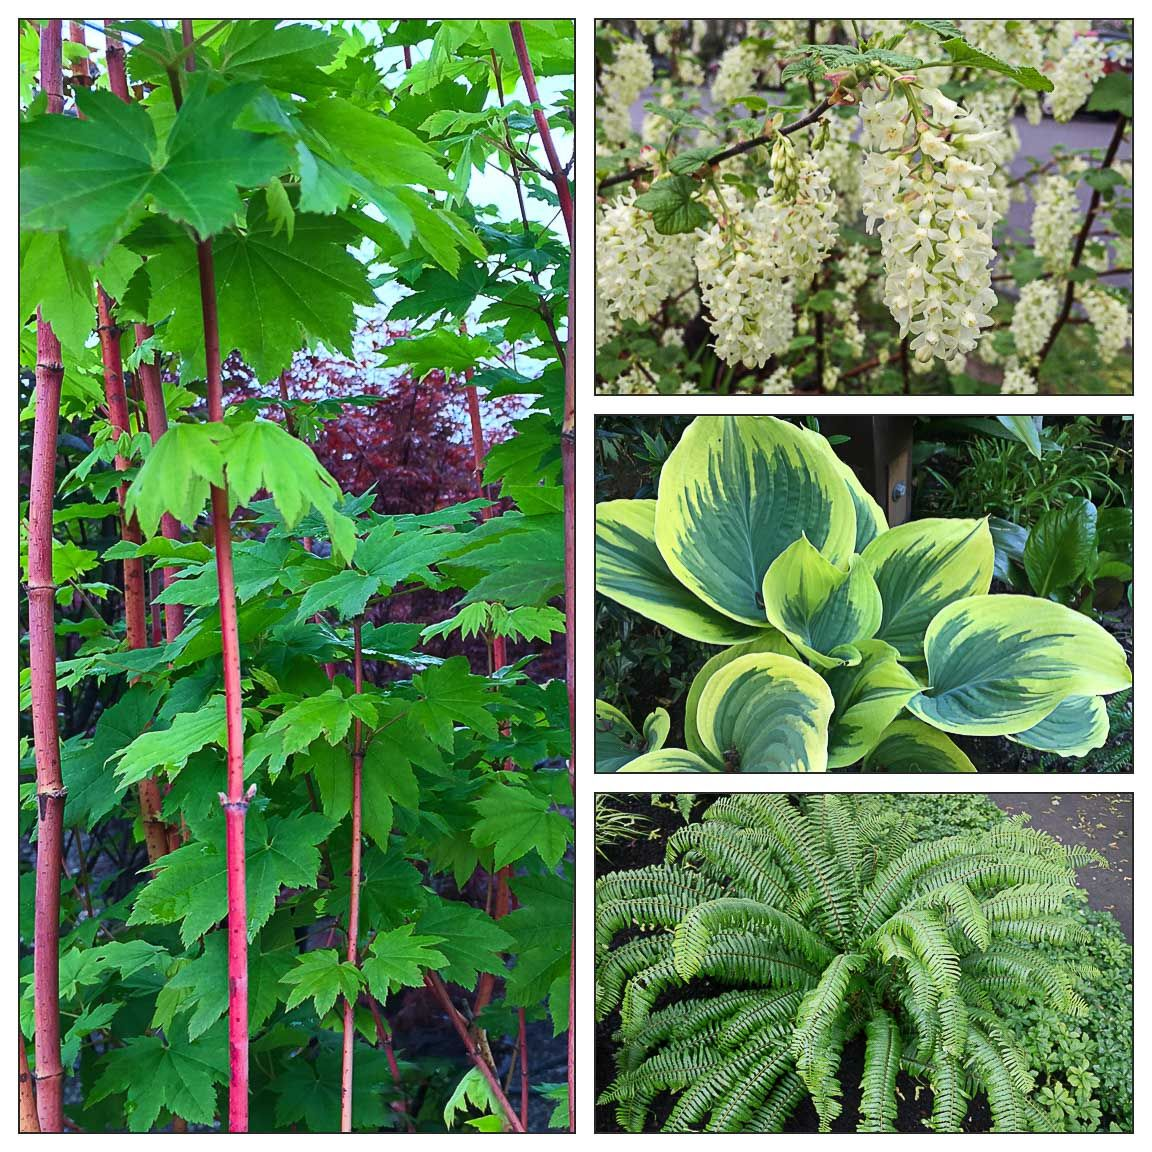 Stylish planting combination using PNW native plants—follow the link for details. Vine maple, sword fern, flowering currant, accompanied by hosta foliage accent.